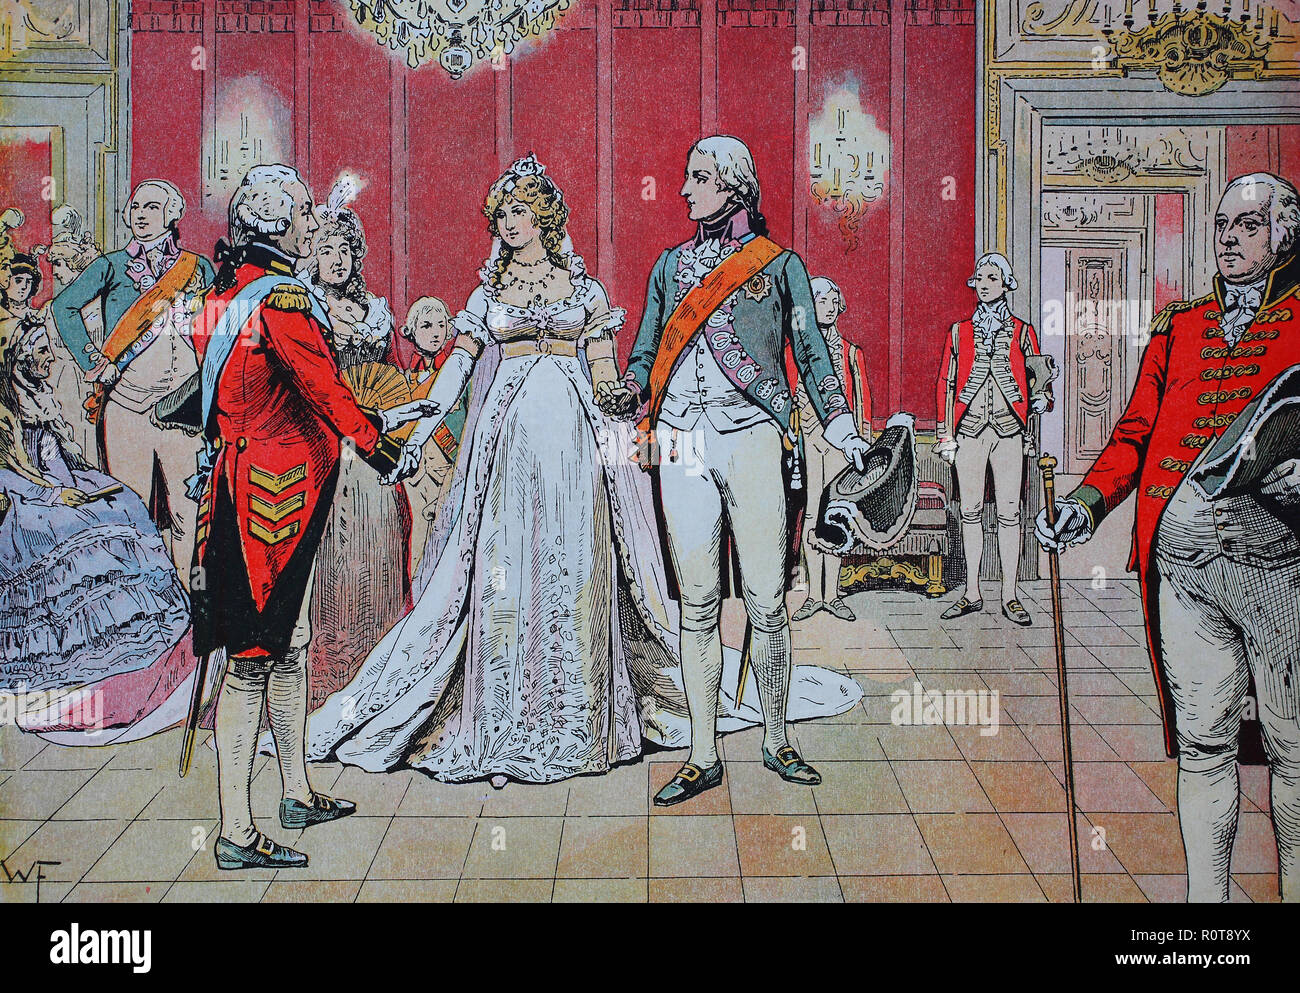 Digital improved reproduction, Duchess Louise of Mecklenburg-Strelitz, Luise Auguste Wilhelmine Amalie, 1776 - 1810, Queen of Prussia, Königin Luise von Preussen and Frederick William III of Prussia, Friedrich Wilhelm III, the wedding in Berlin, 24. December 1793 - Stock Image